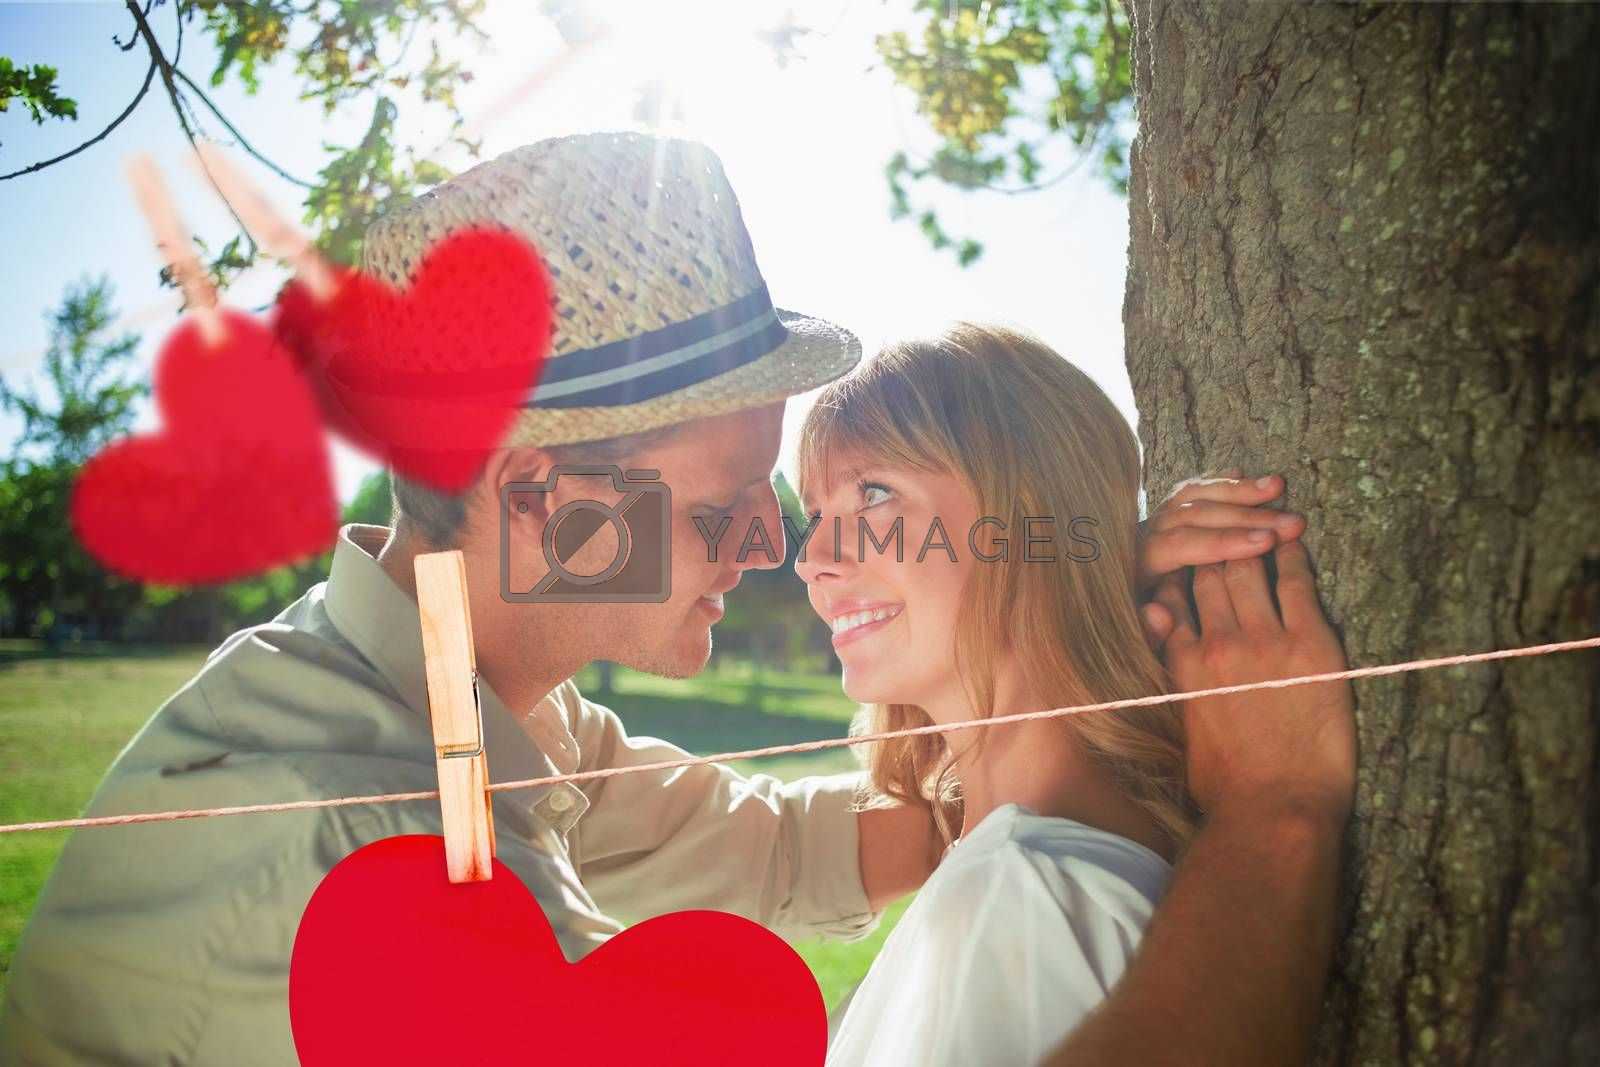 Cute smiling couple leaning against tree in the park against hearts hanging on a line